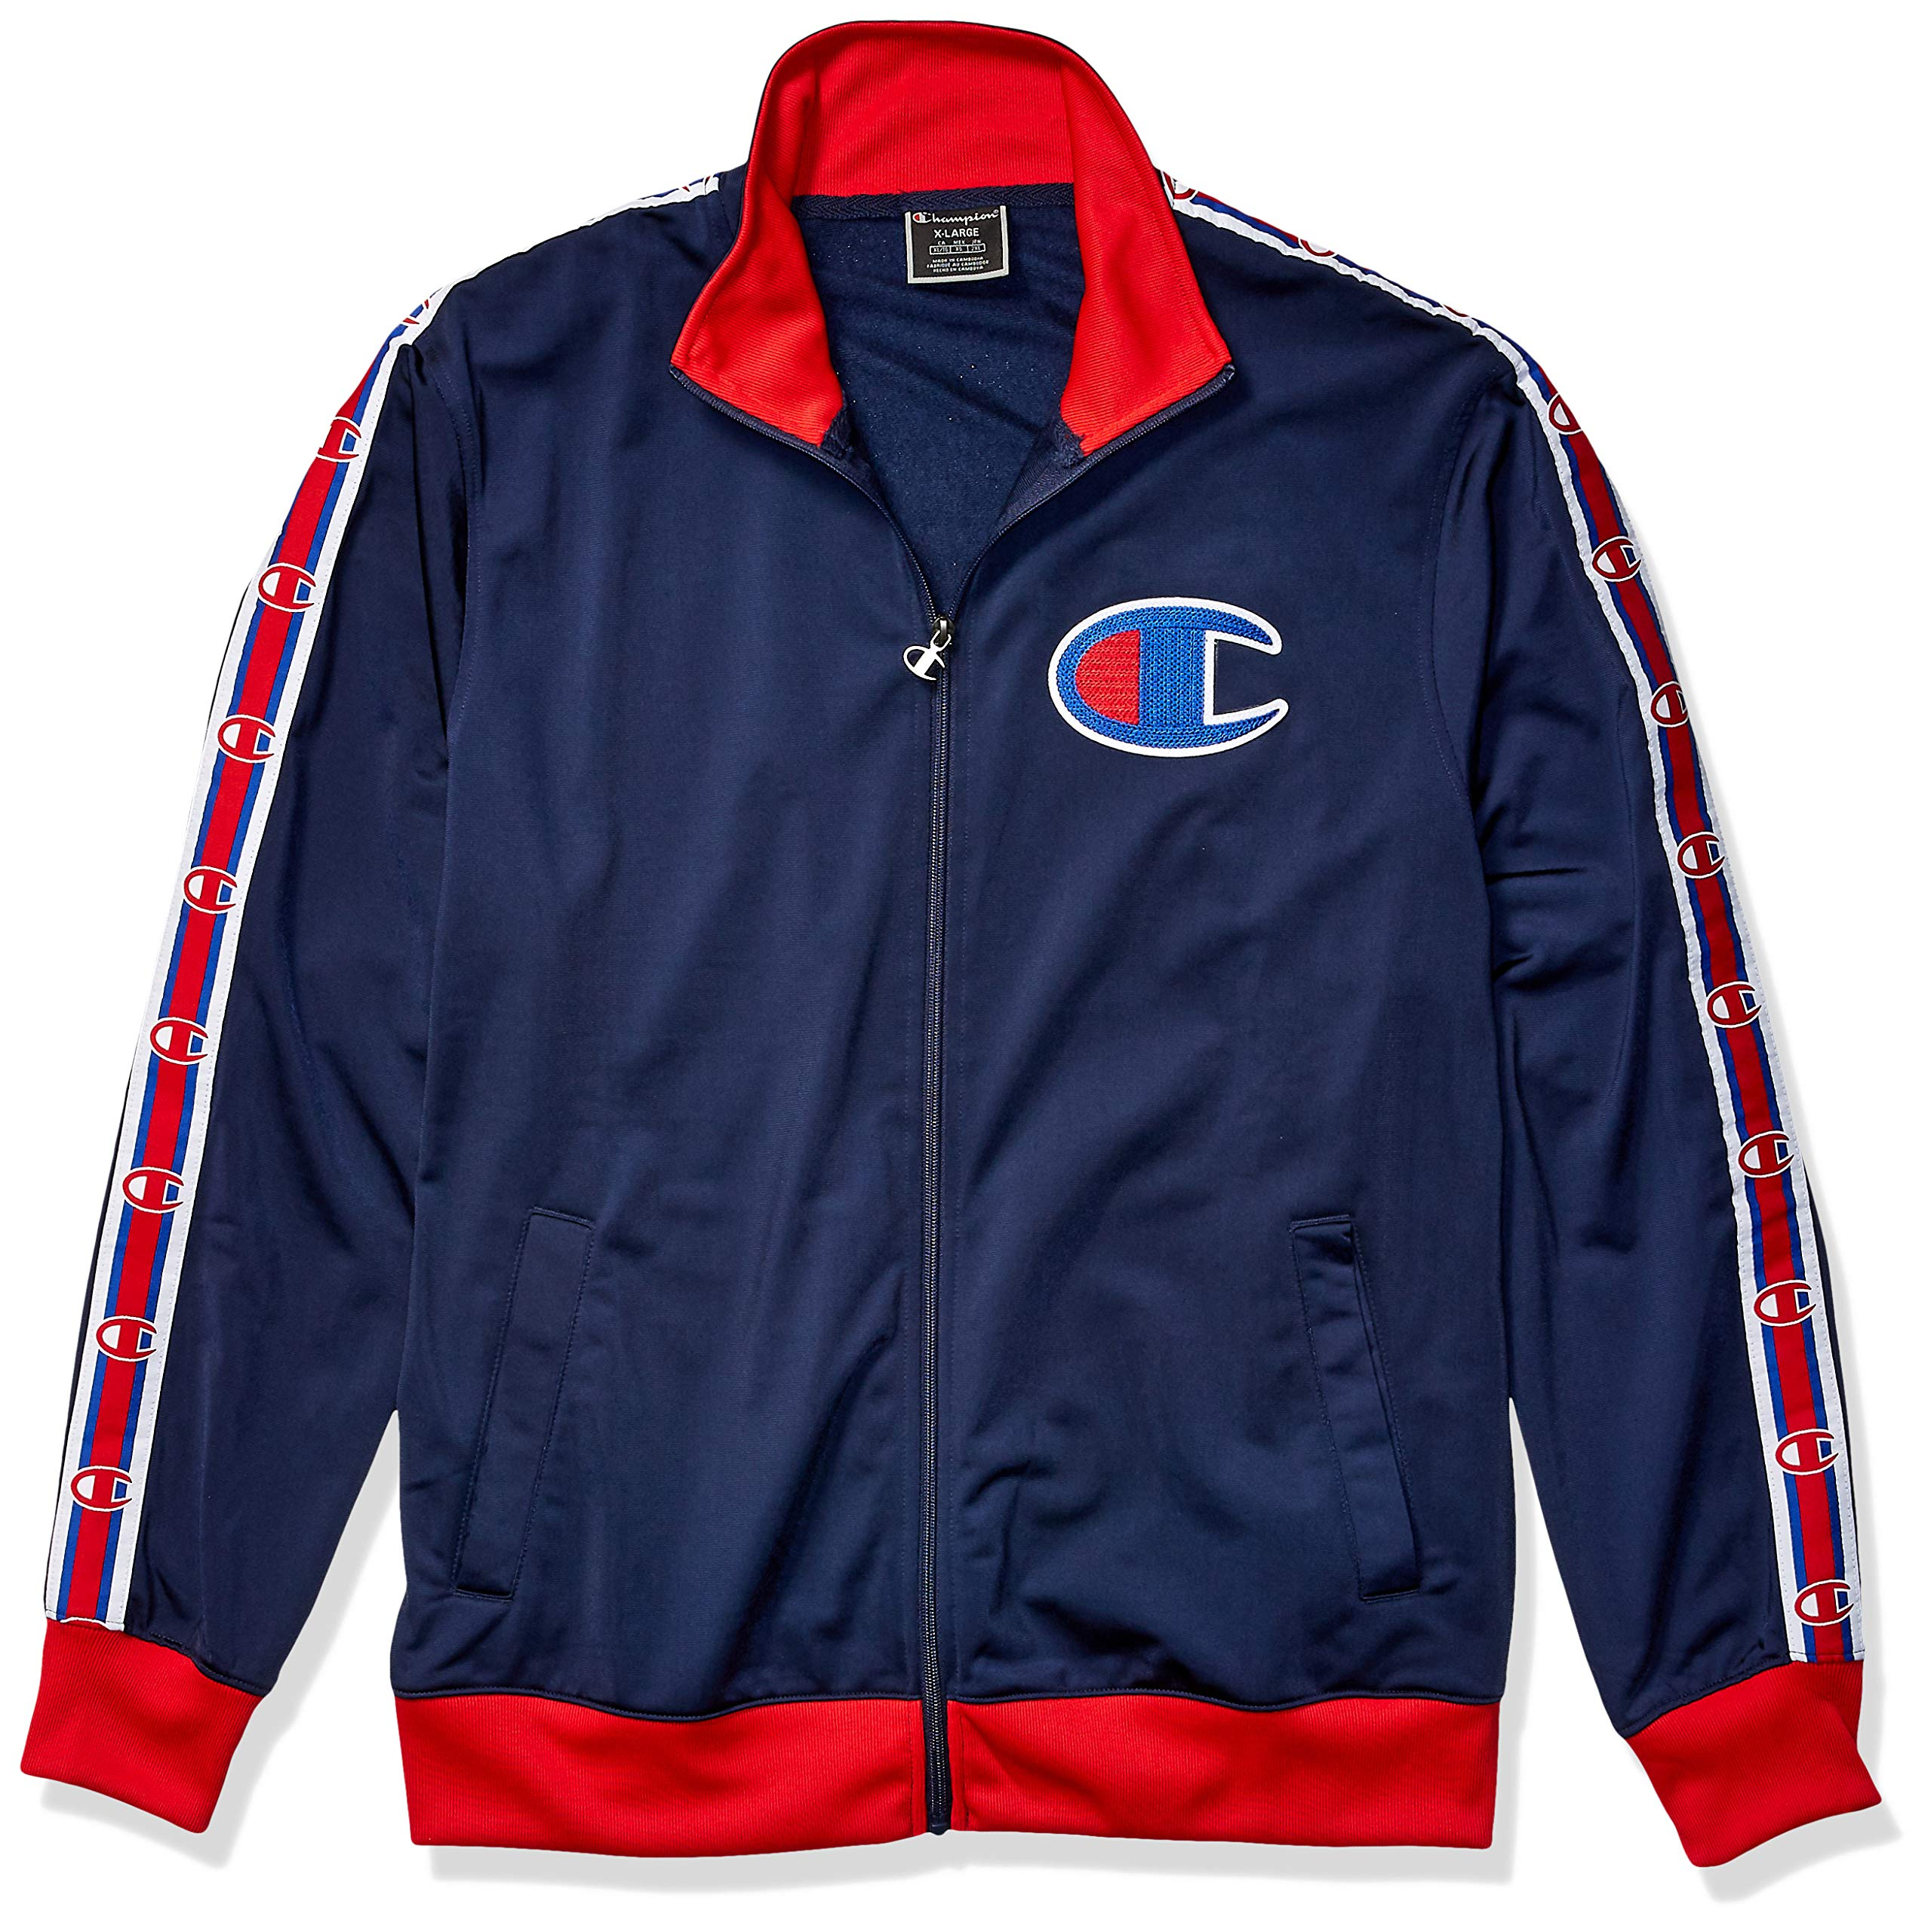 Champion LIFE Men's Track Jacket, Imperial Indigo/Scarlet, X-Large by Champion LIFE